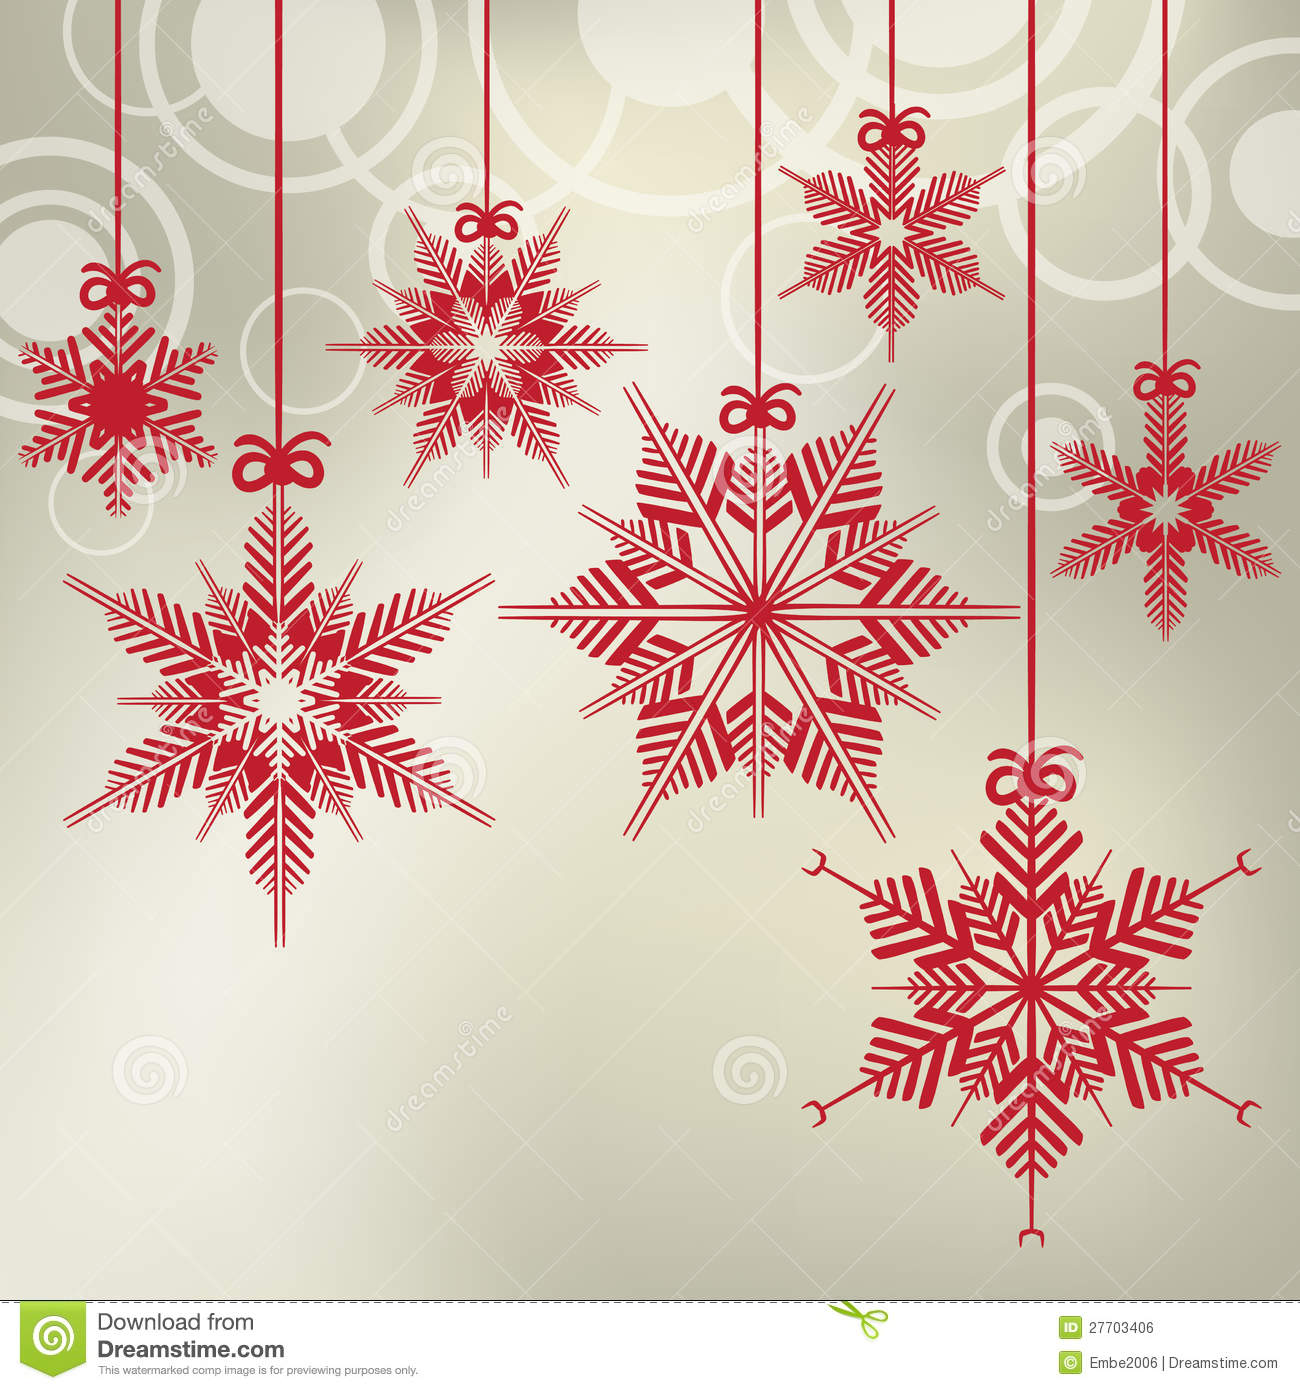 hanging christmas snowflakes royalty free stock image